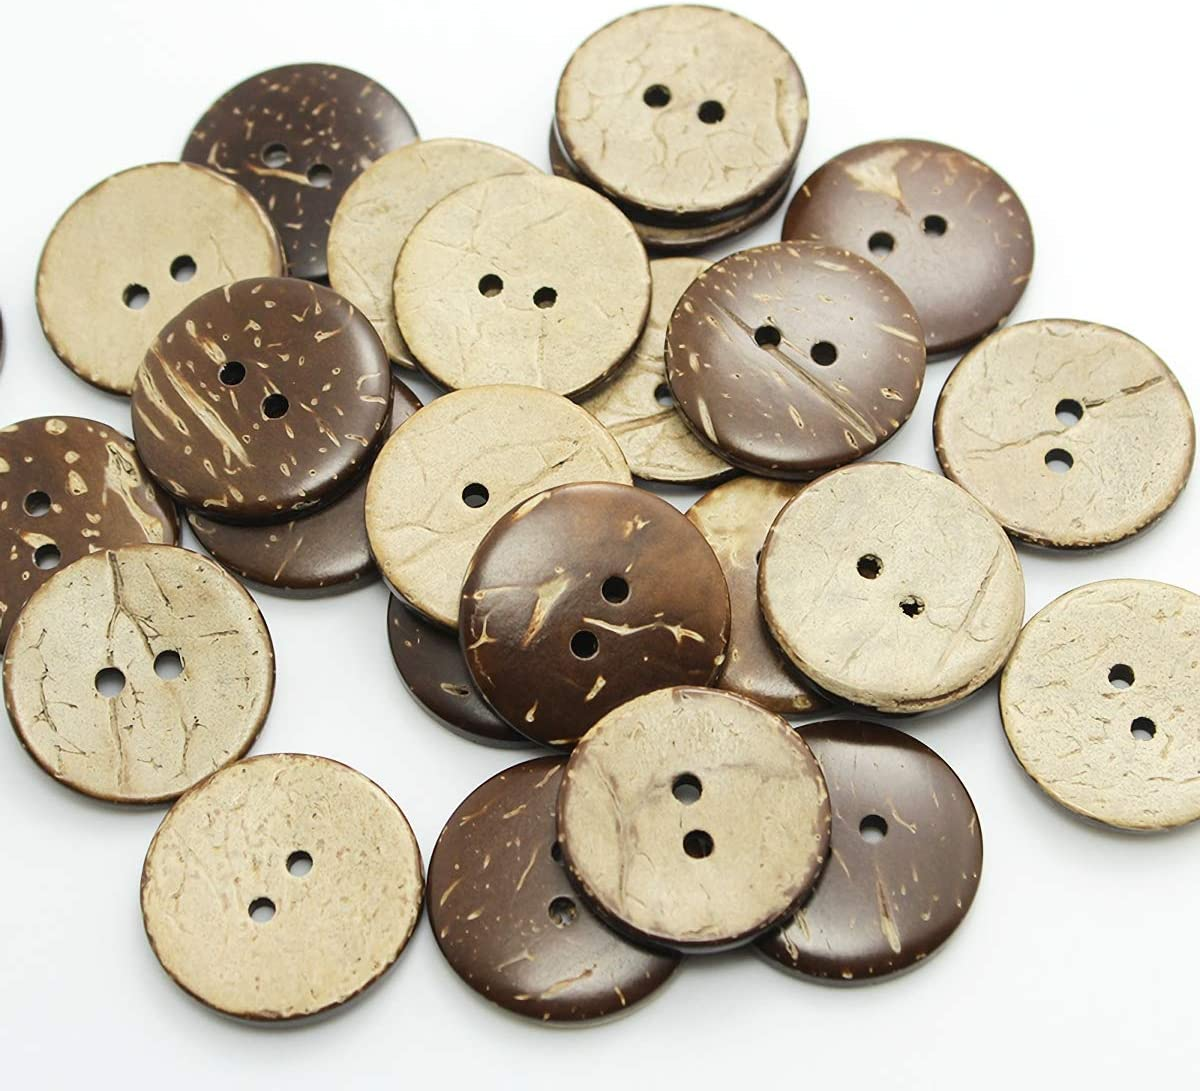 20 50 pcs Coconut Shell 2 Holes Round Buttons Sewing Scrapbooking Craft 30mm Día